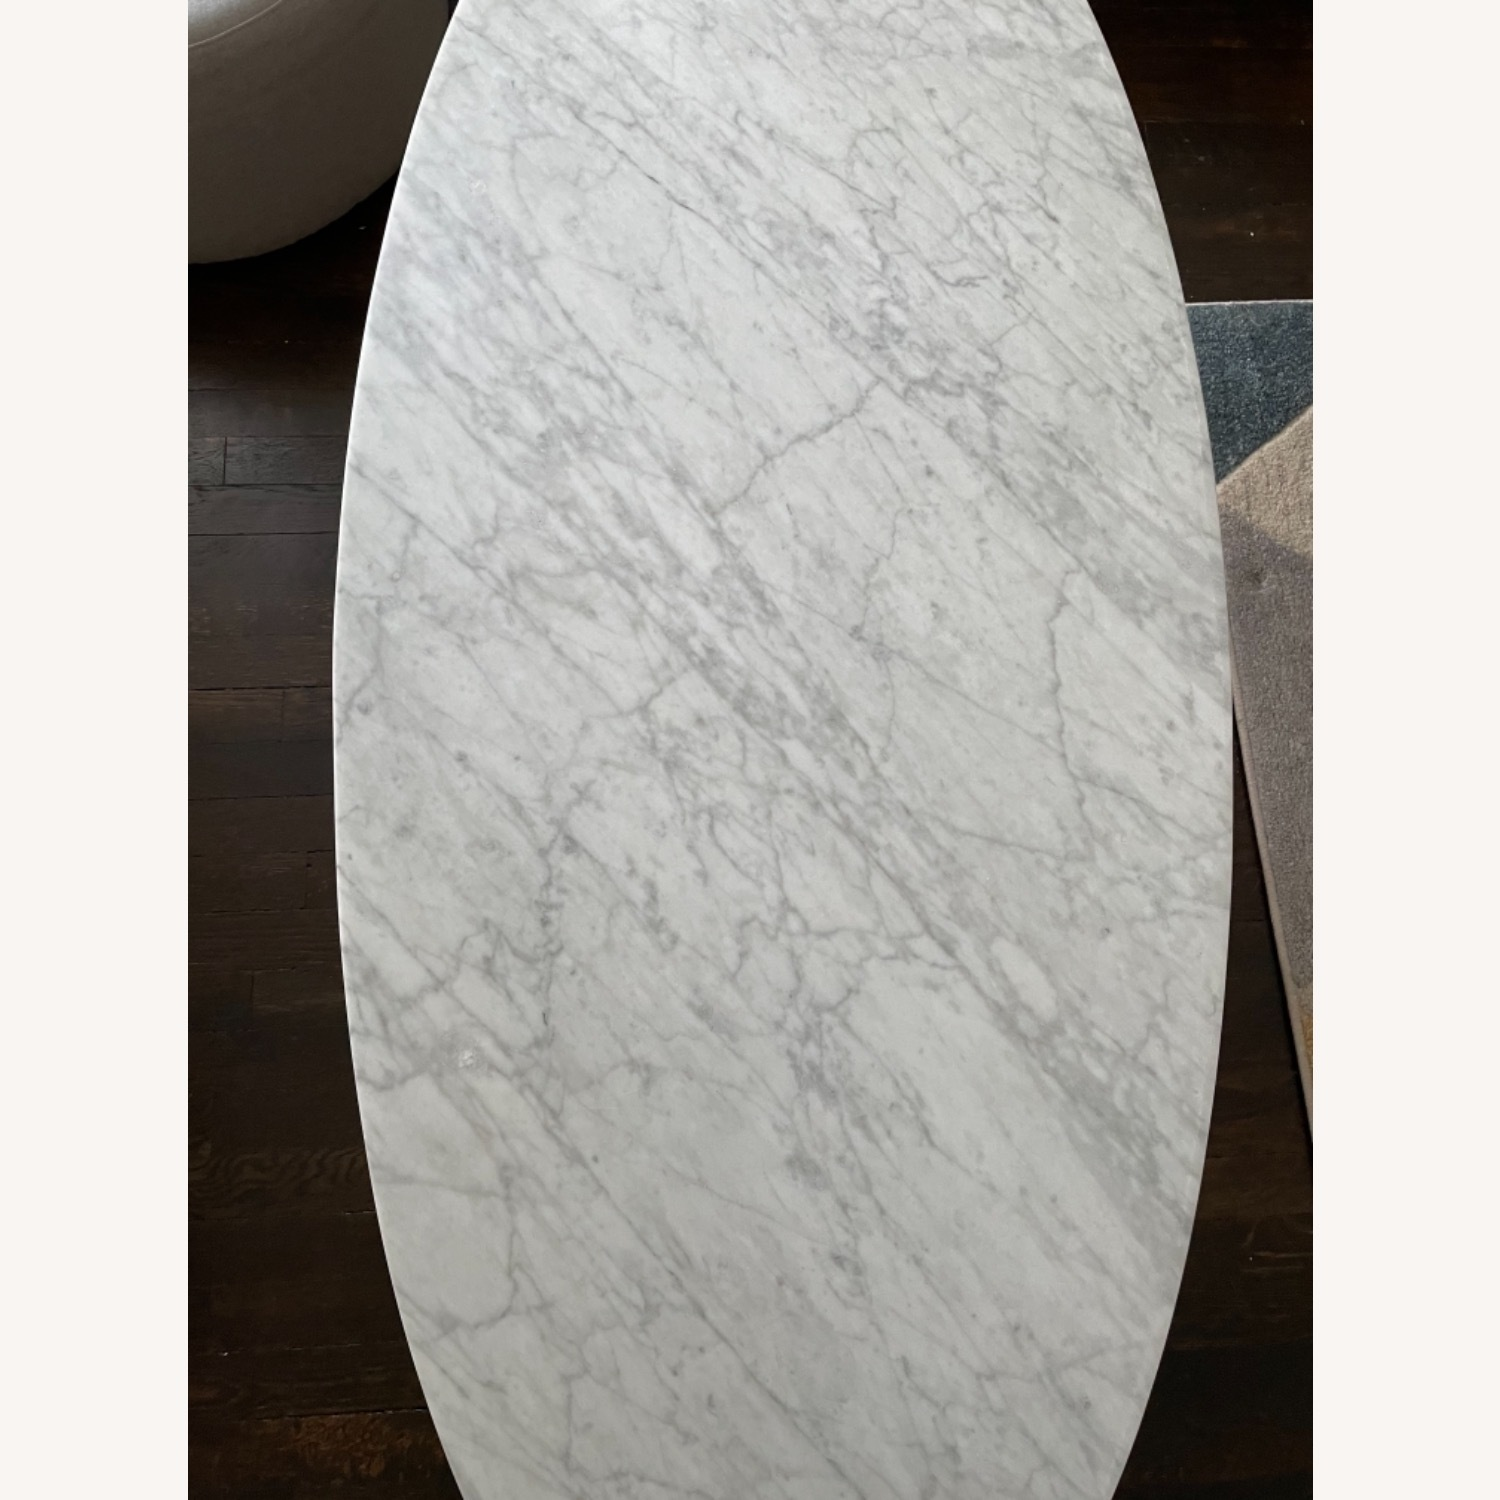 West Elm Reeve Mid-Century Oval Coffee Table - Marble Top - image-4